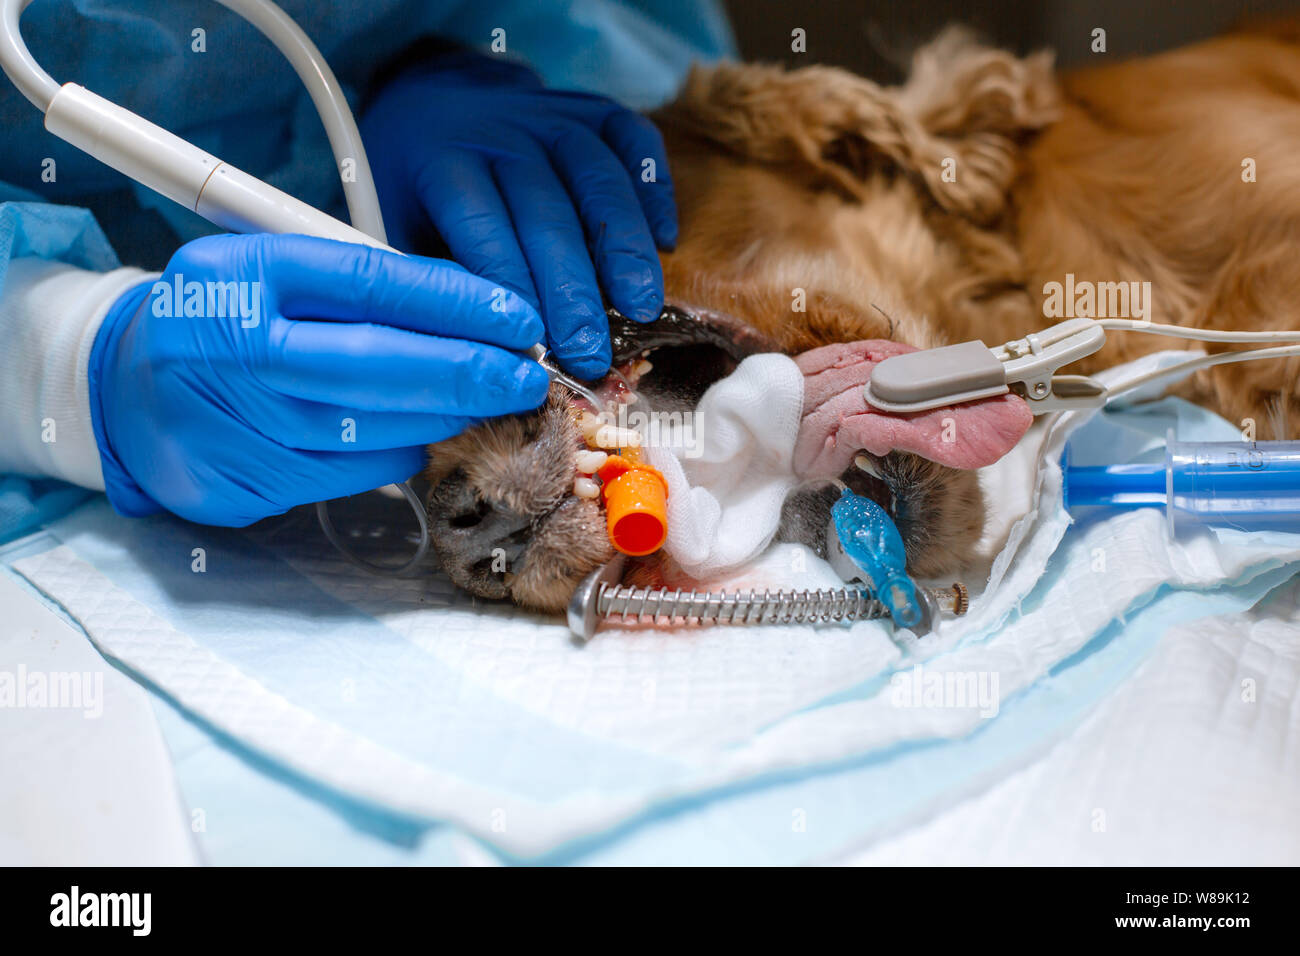 Veterinary dentistry. Dentist surgeon veterinarian cleans and treats a dog's teeth under anesthesia on the operating table in a veterinary clinic. Ult Stock Photo